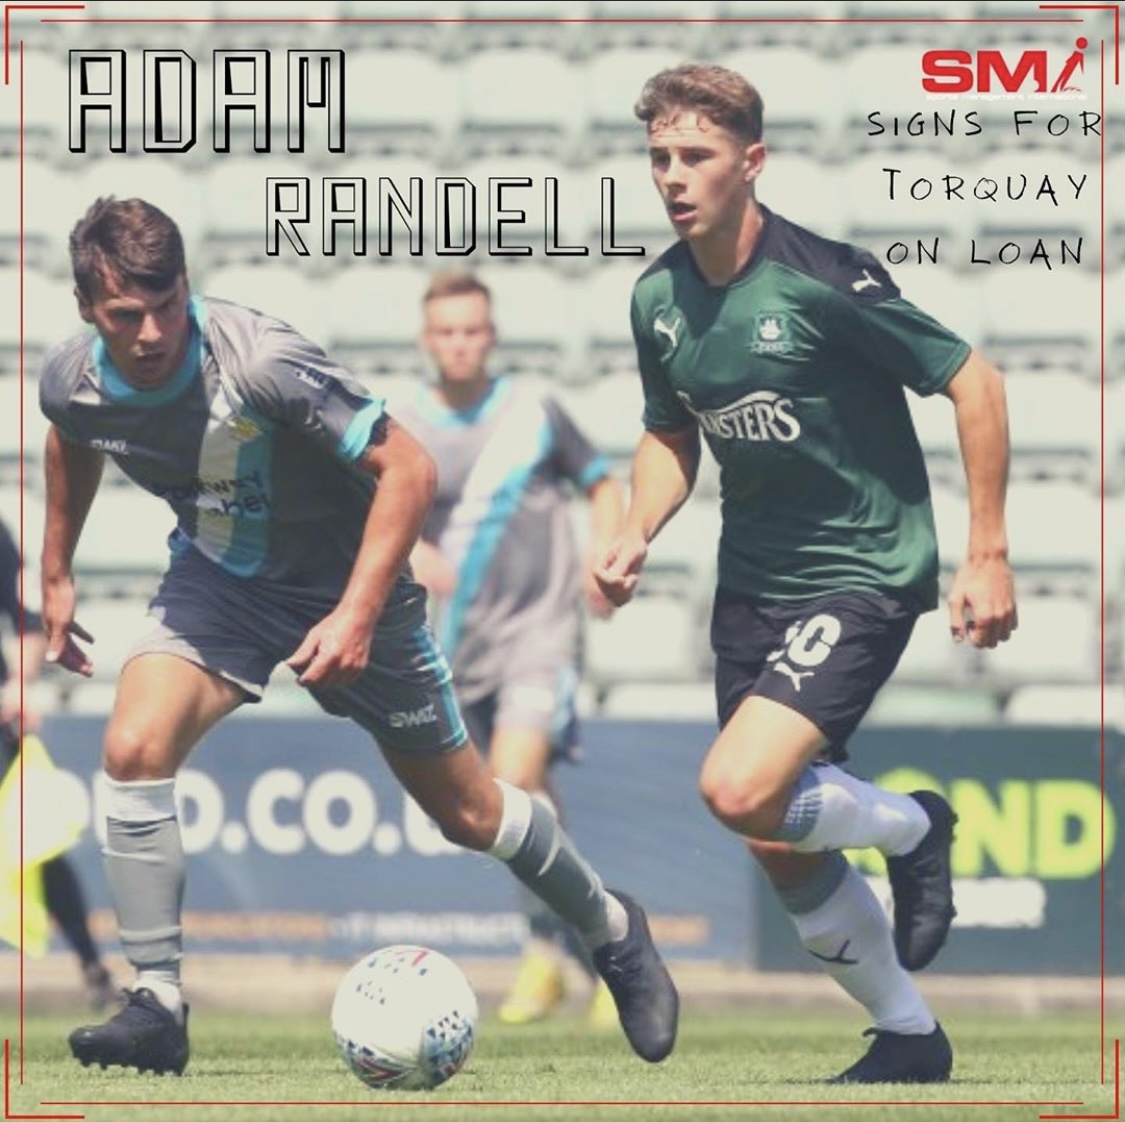 Adam Randell joins Torquay on loan